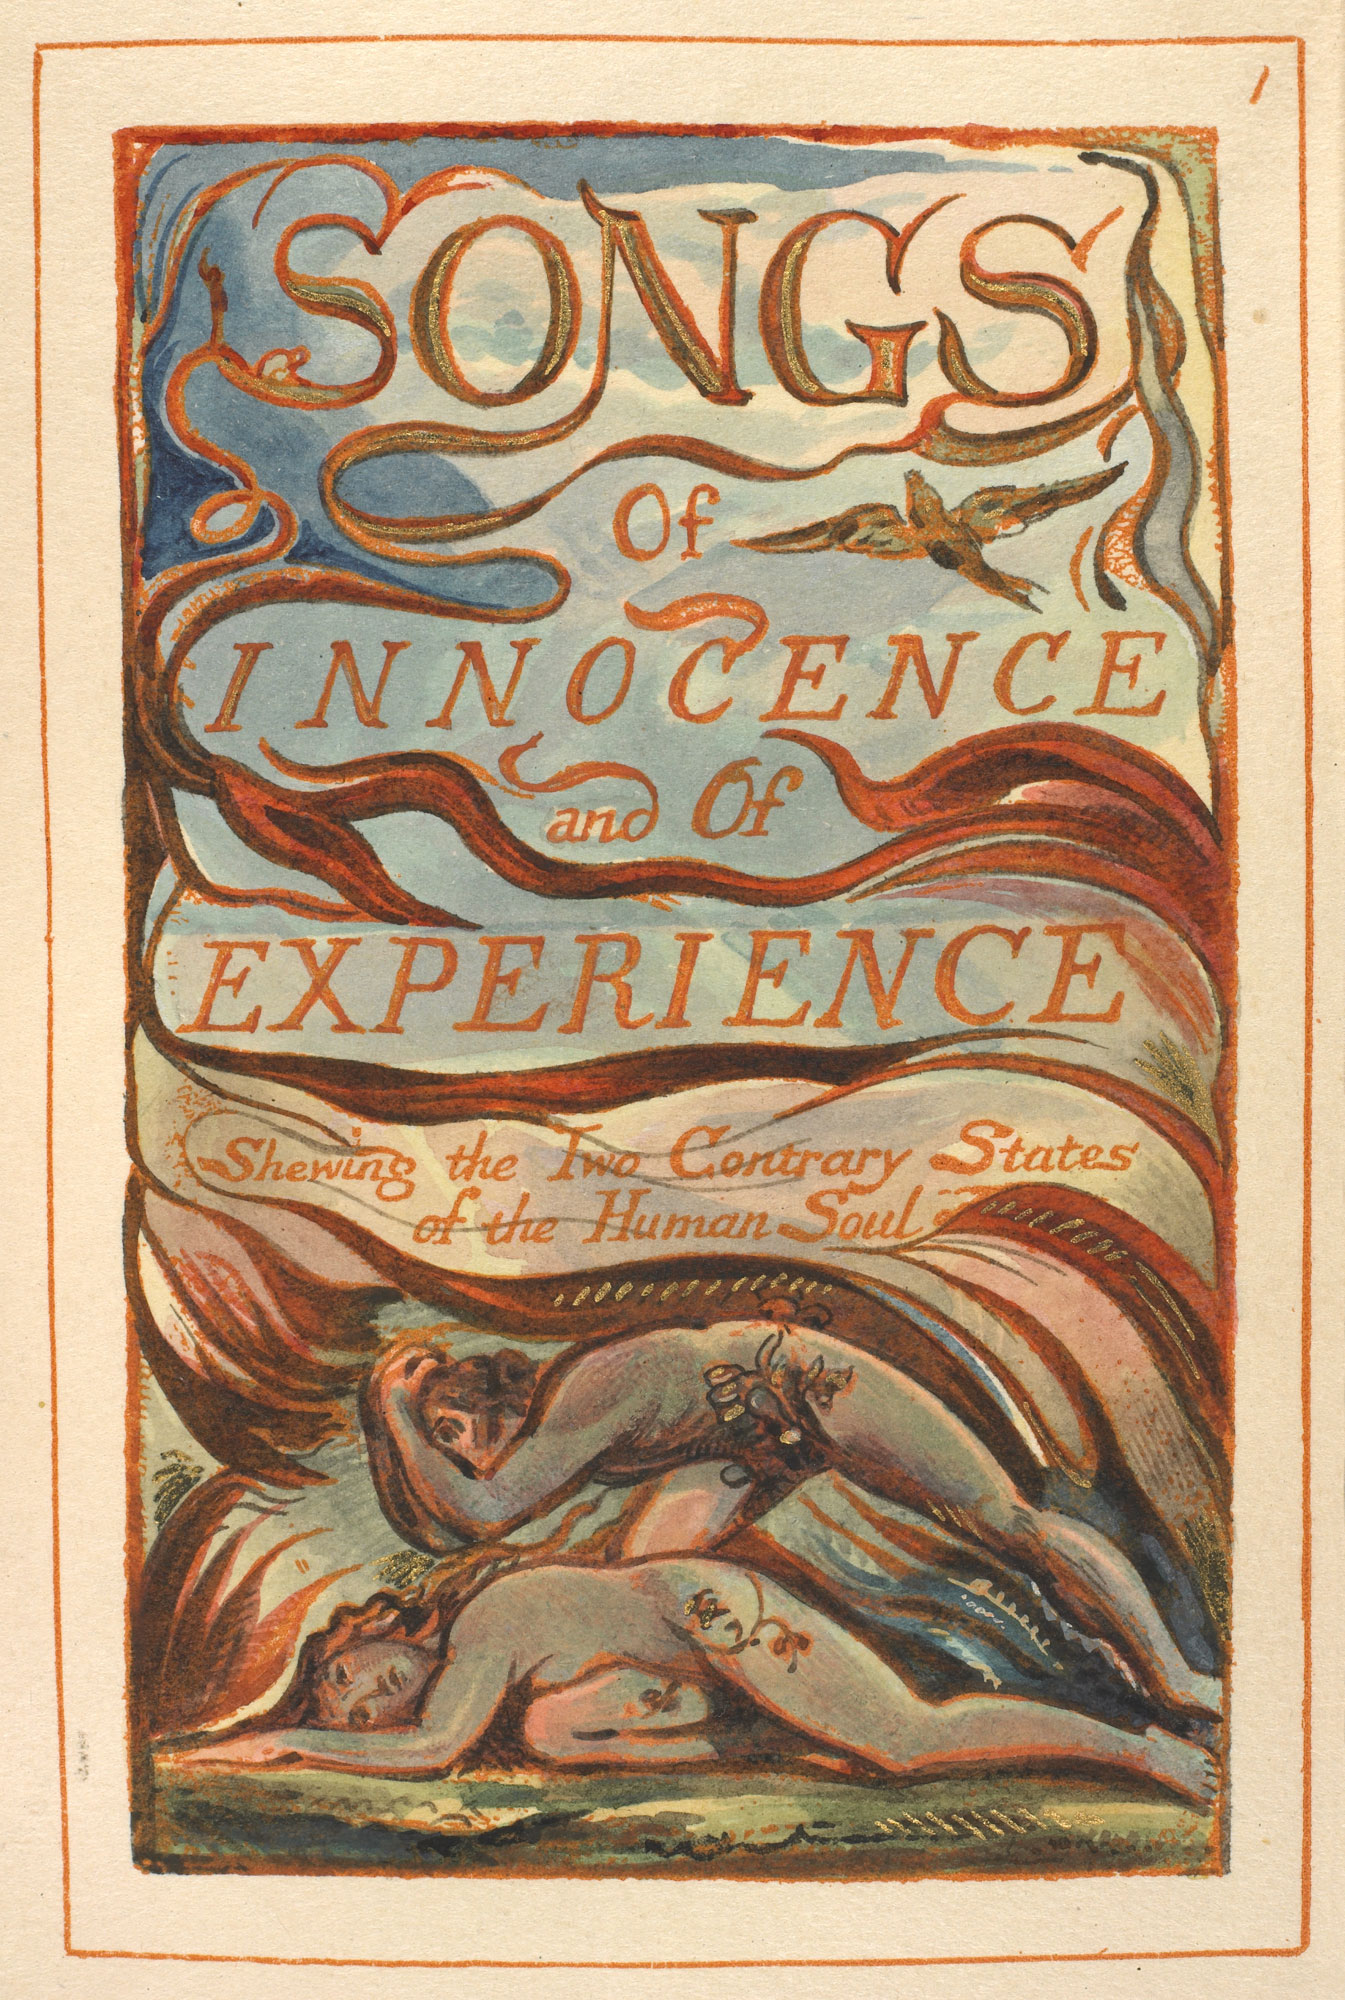 William Blake's Songs of Innocence and Experience [page: 1]